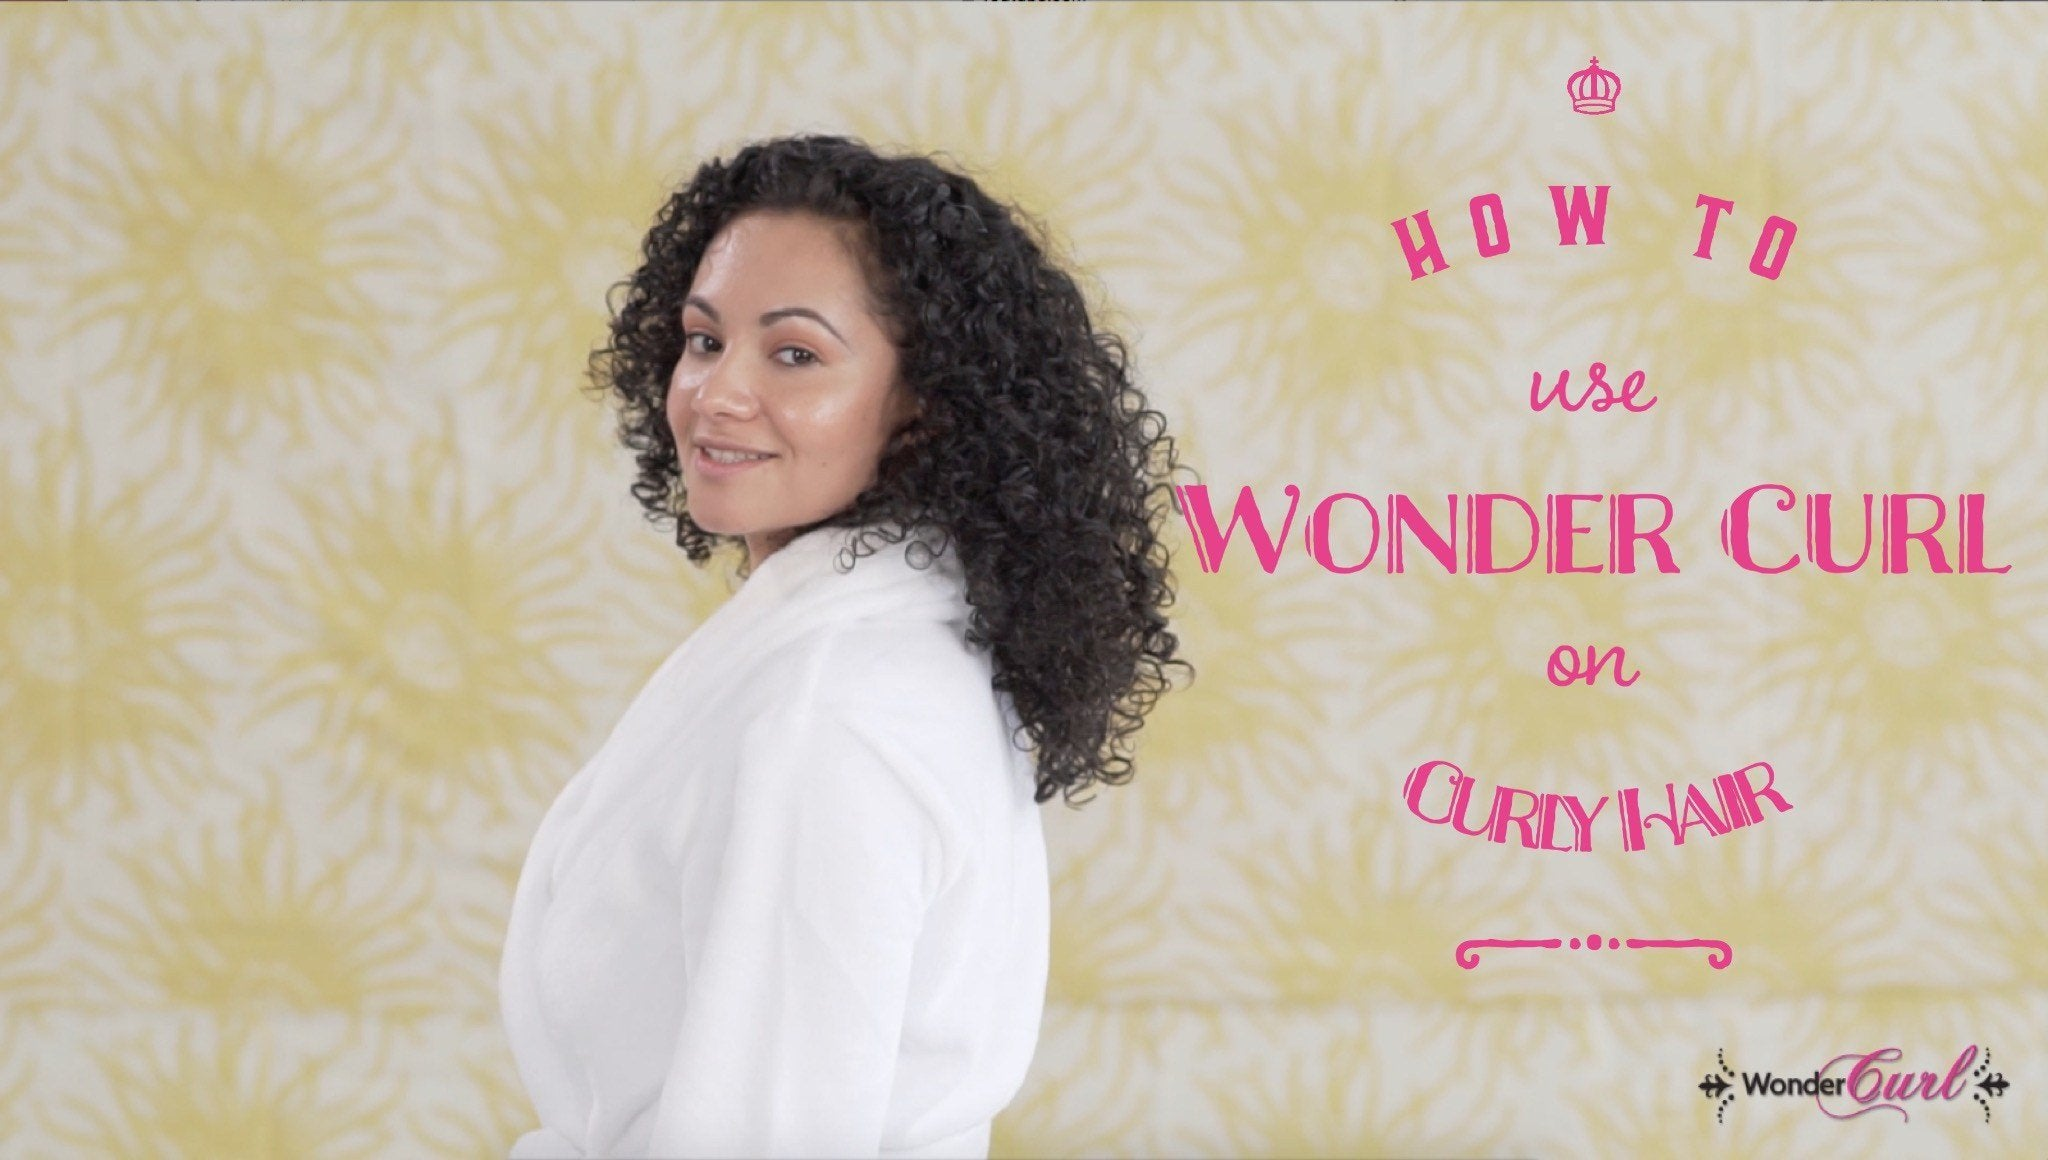 How to use Wonder Curl natural hair products on curly hair